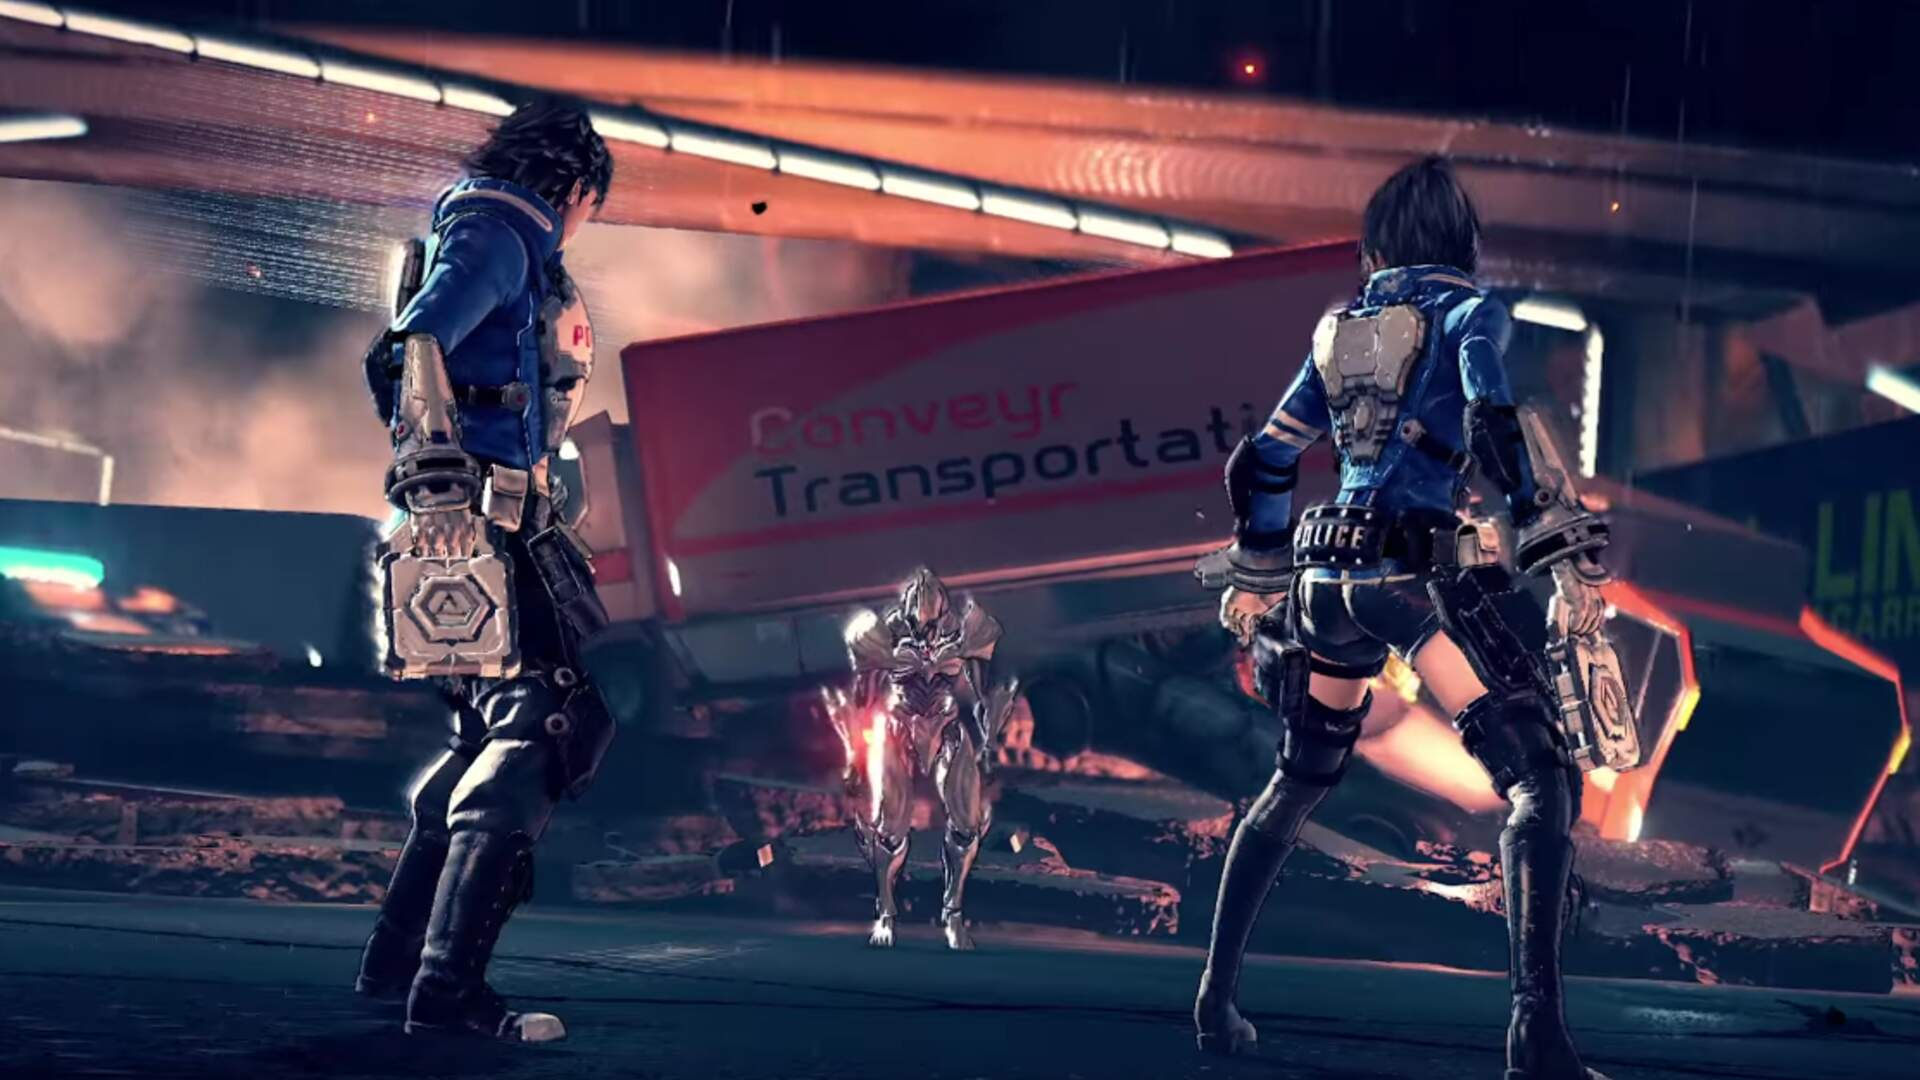 Astral Chain is a New Platinum Action Game From the Designer of Nier: Automata